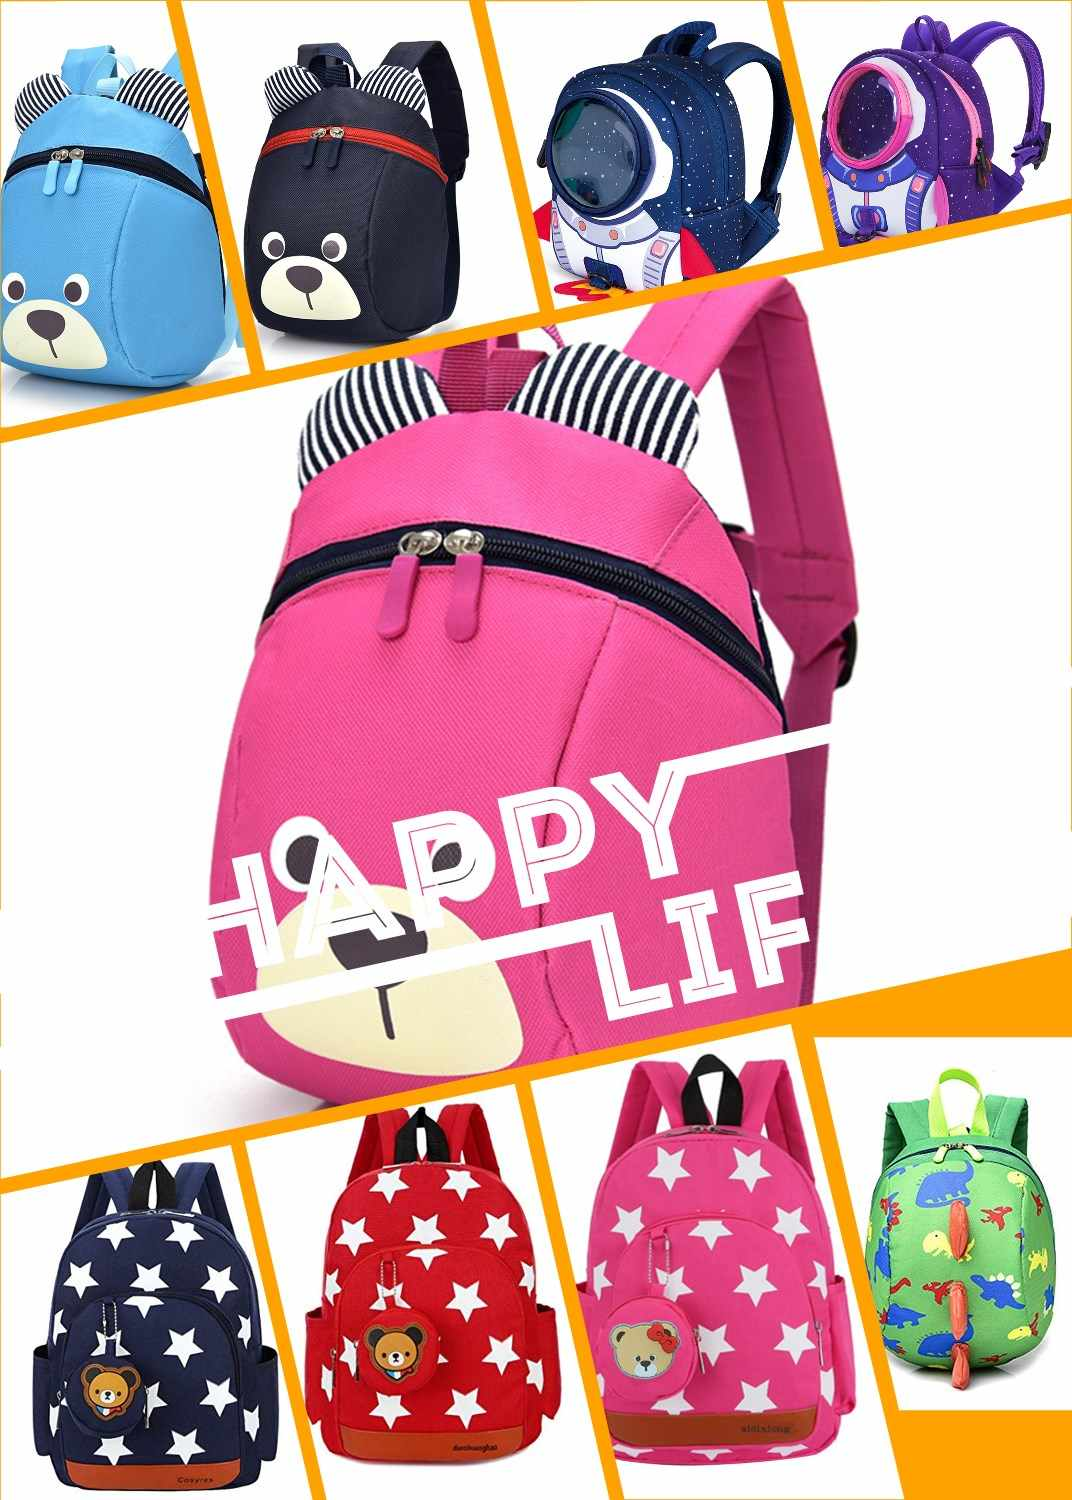 Boys Backpacks for Kindergarten Stars Printing Nylon Children Backpacks Waterproof  Kids Kindergarten School Bags for Baby Girls